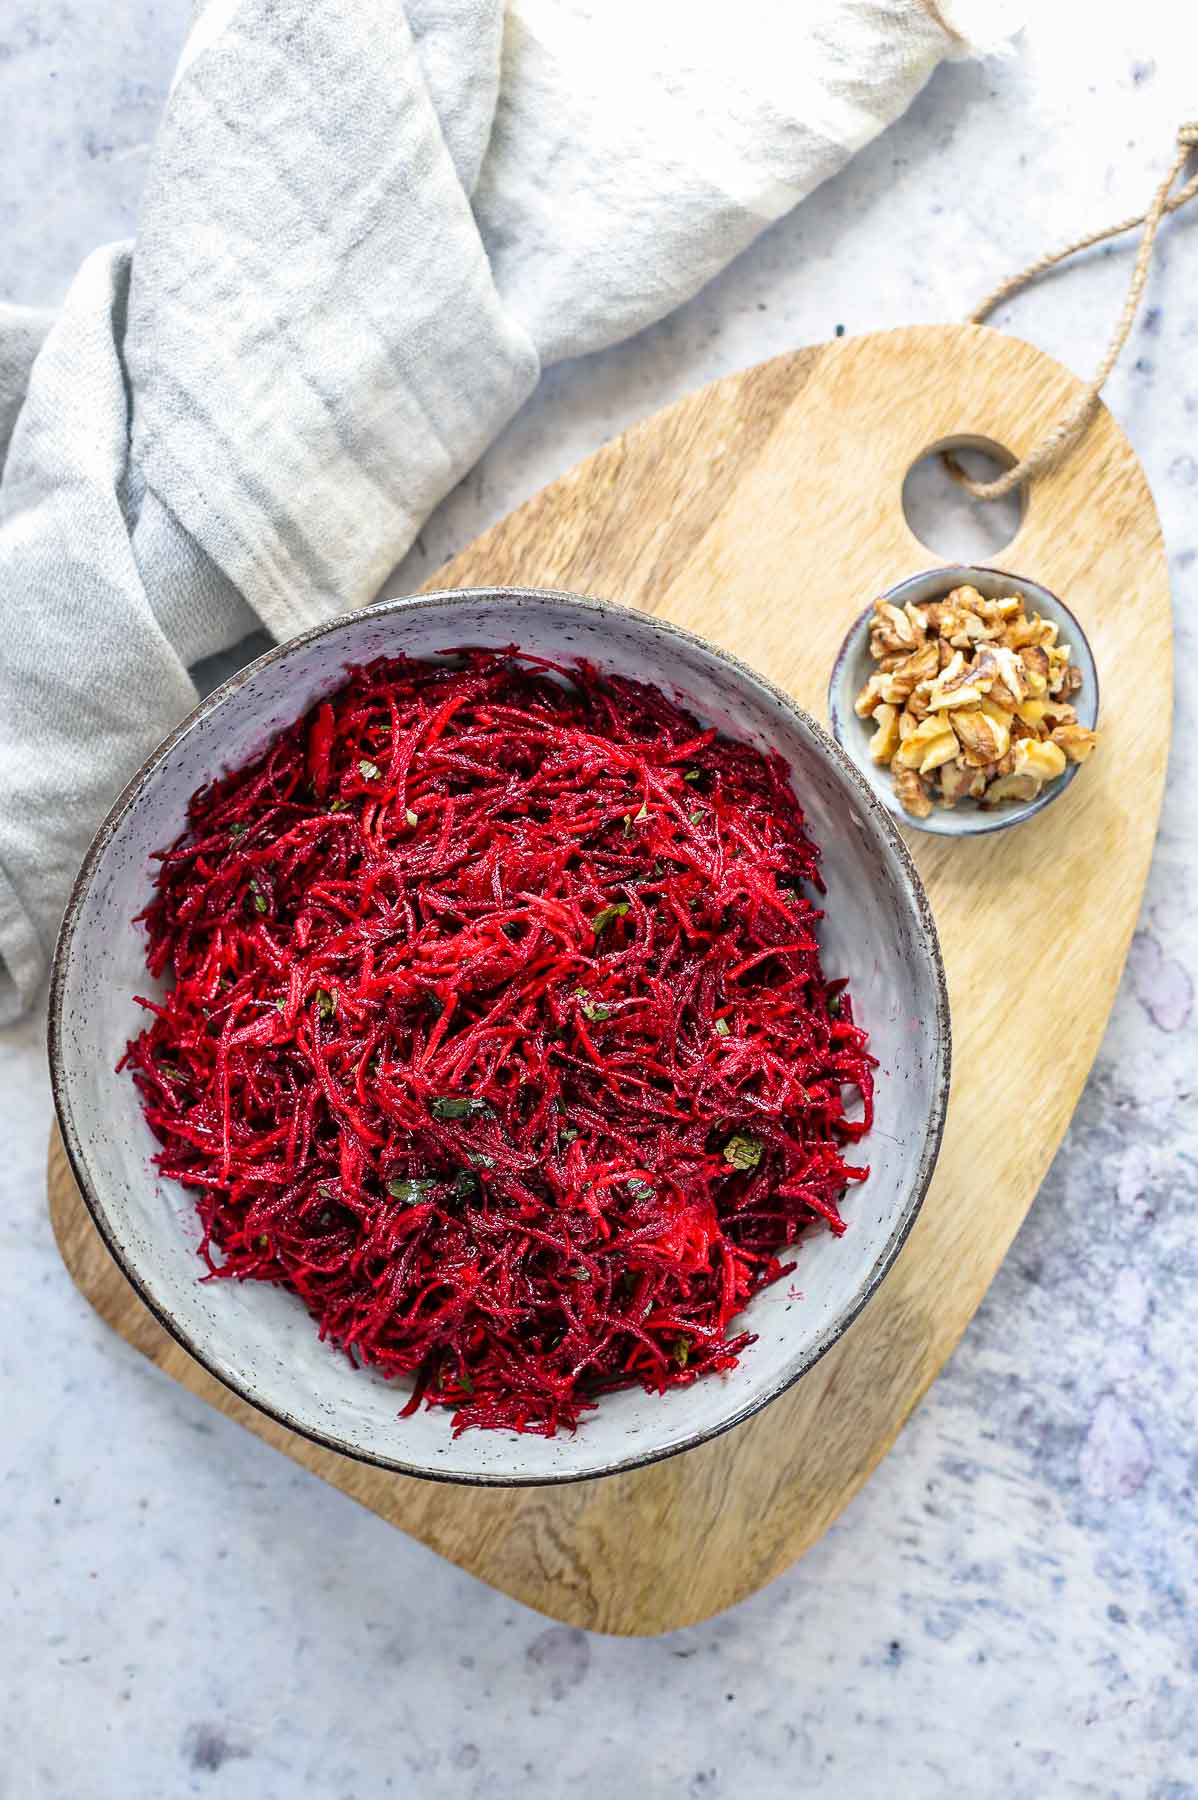 Beet and Carrot Salad (Beetroot Slaw with Carrots recipe)